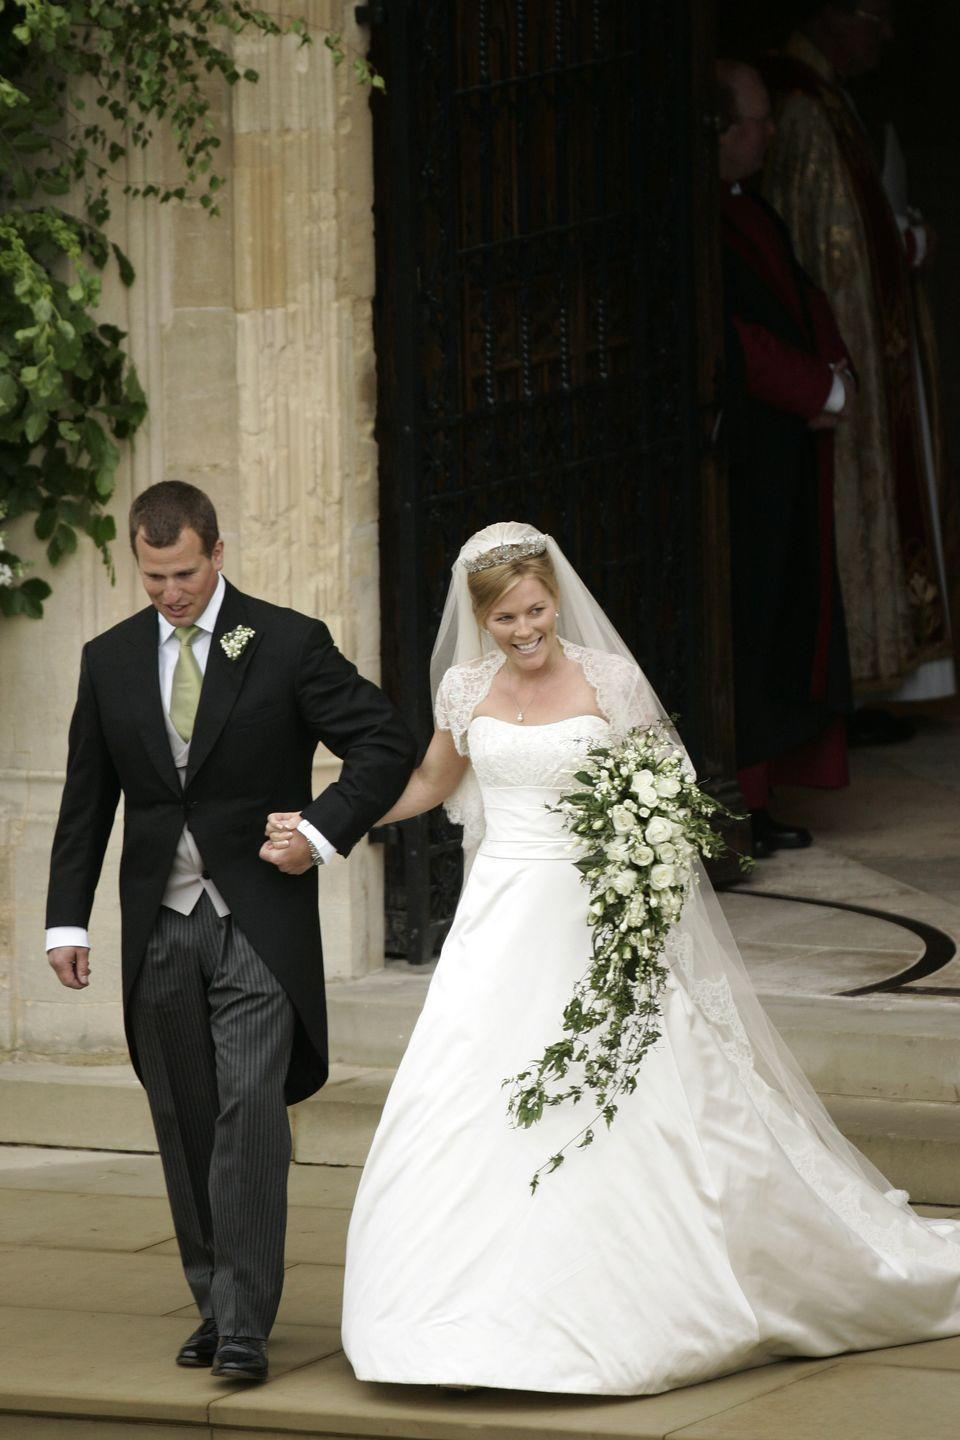 <p>Kelly, who married the Queen's grandson, Peter Phillips, chose a sweetheart neckline with a lace shrug for her wedding ceremony.</p>